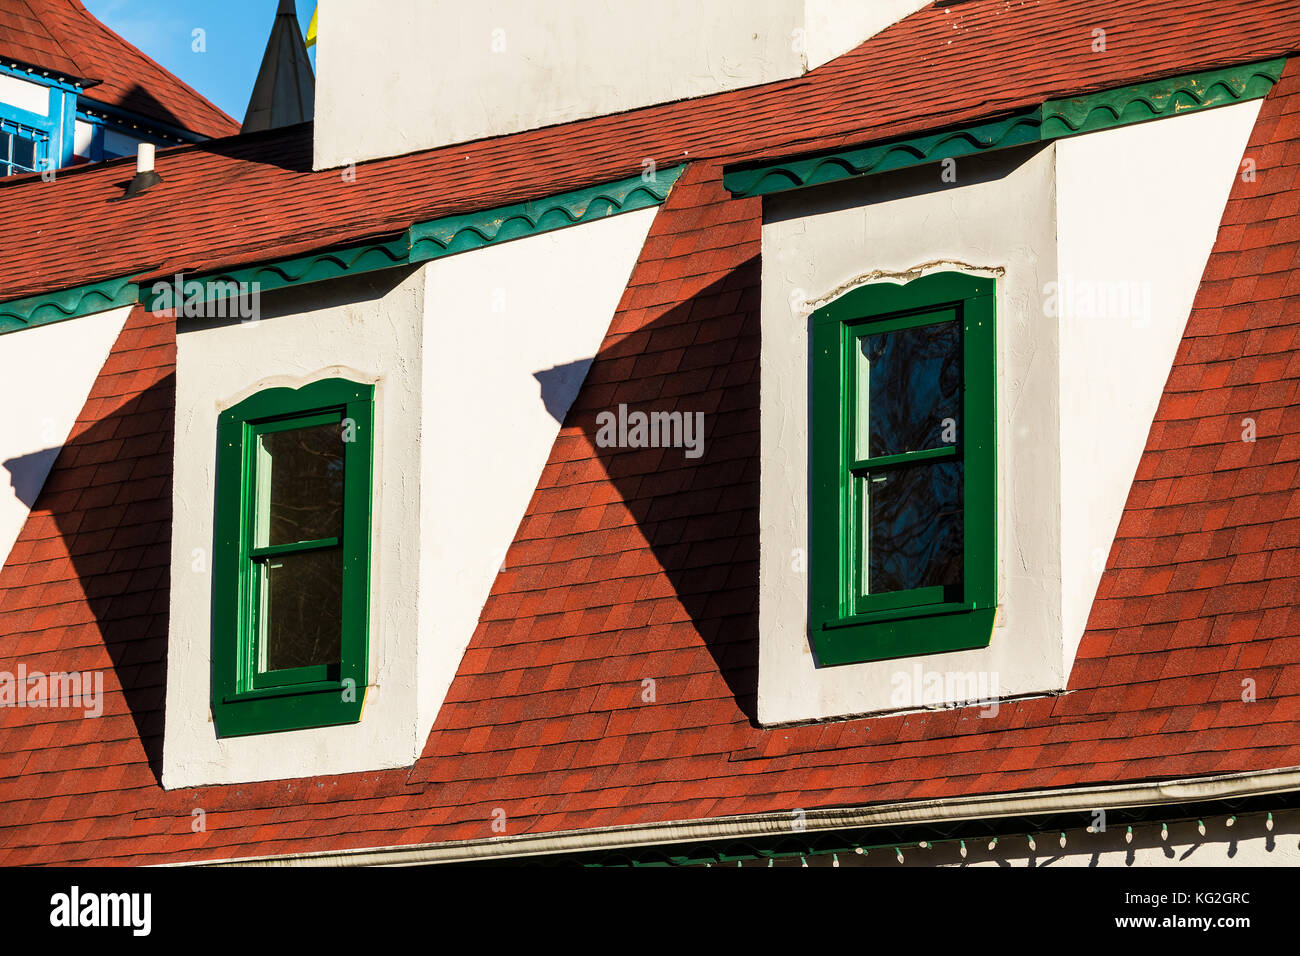 antique roof window attic stockfotos antique roof window attic bilder alamy. Black Bedroom Furniture Sets. Home Design Ideas